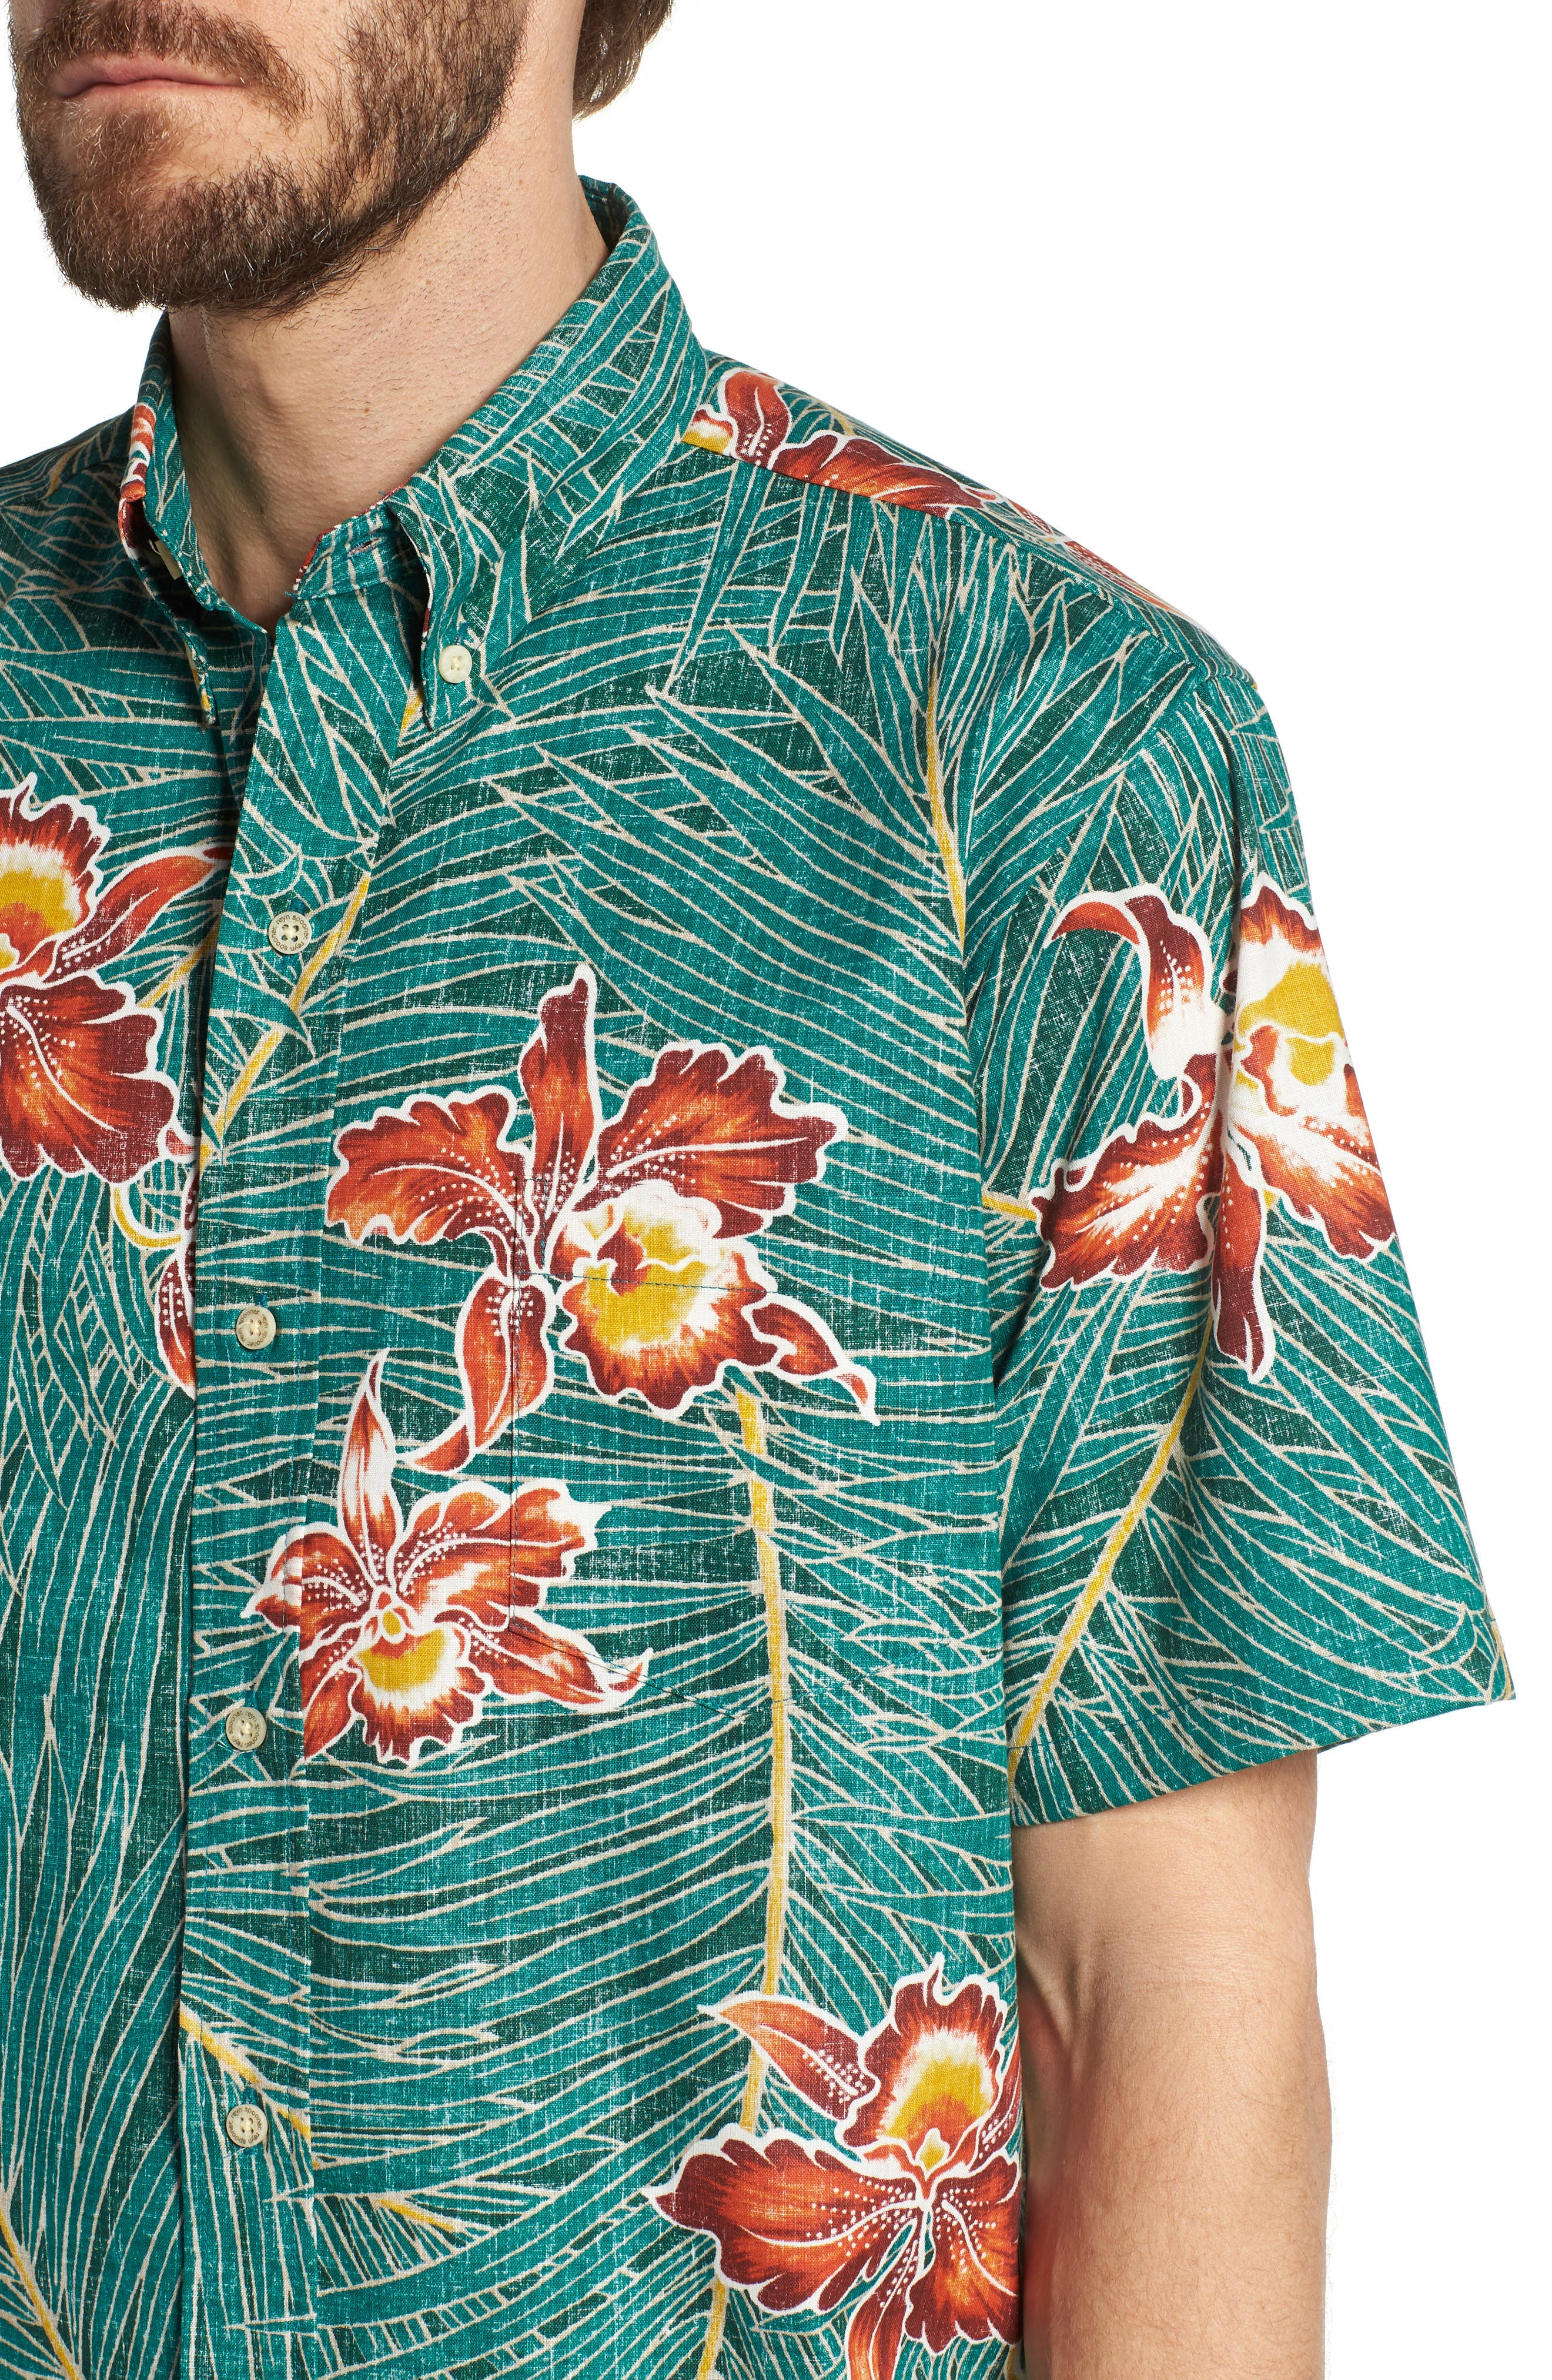 Okika Oasis Traditional Fit Sport Shirt,                             Alternate thumbnail 4, color,                             310